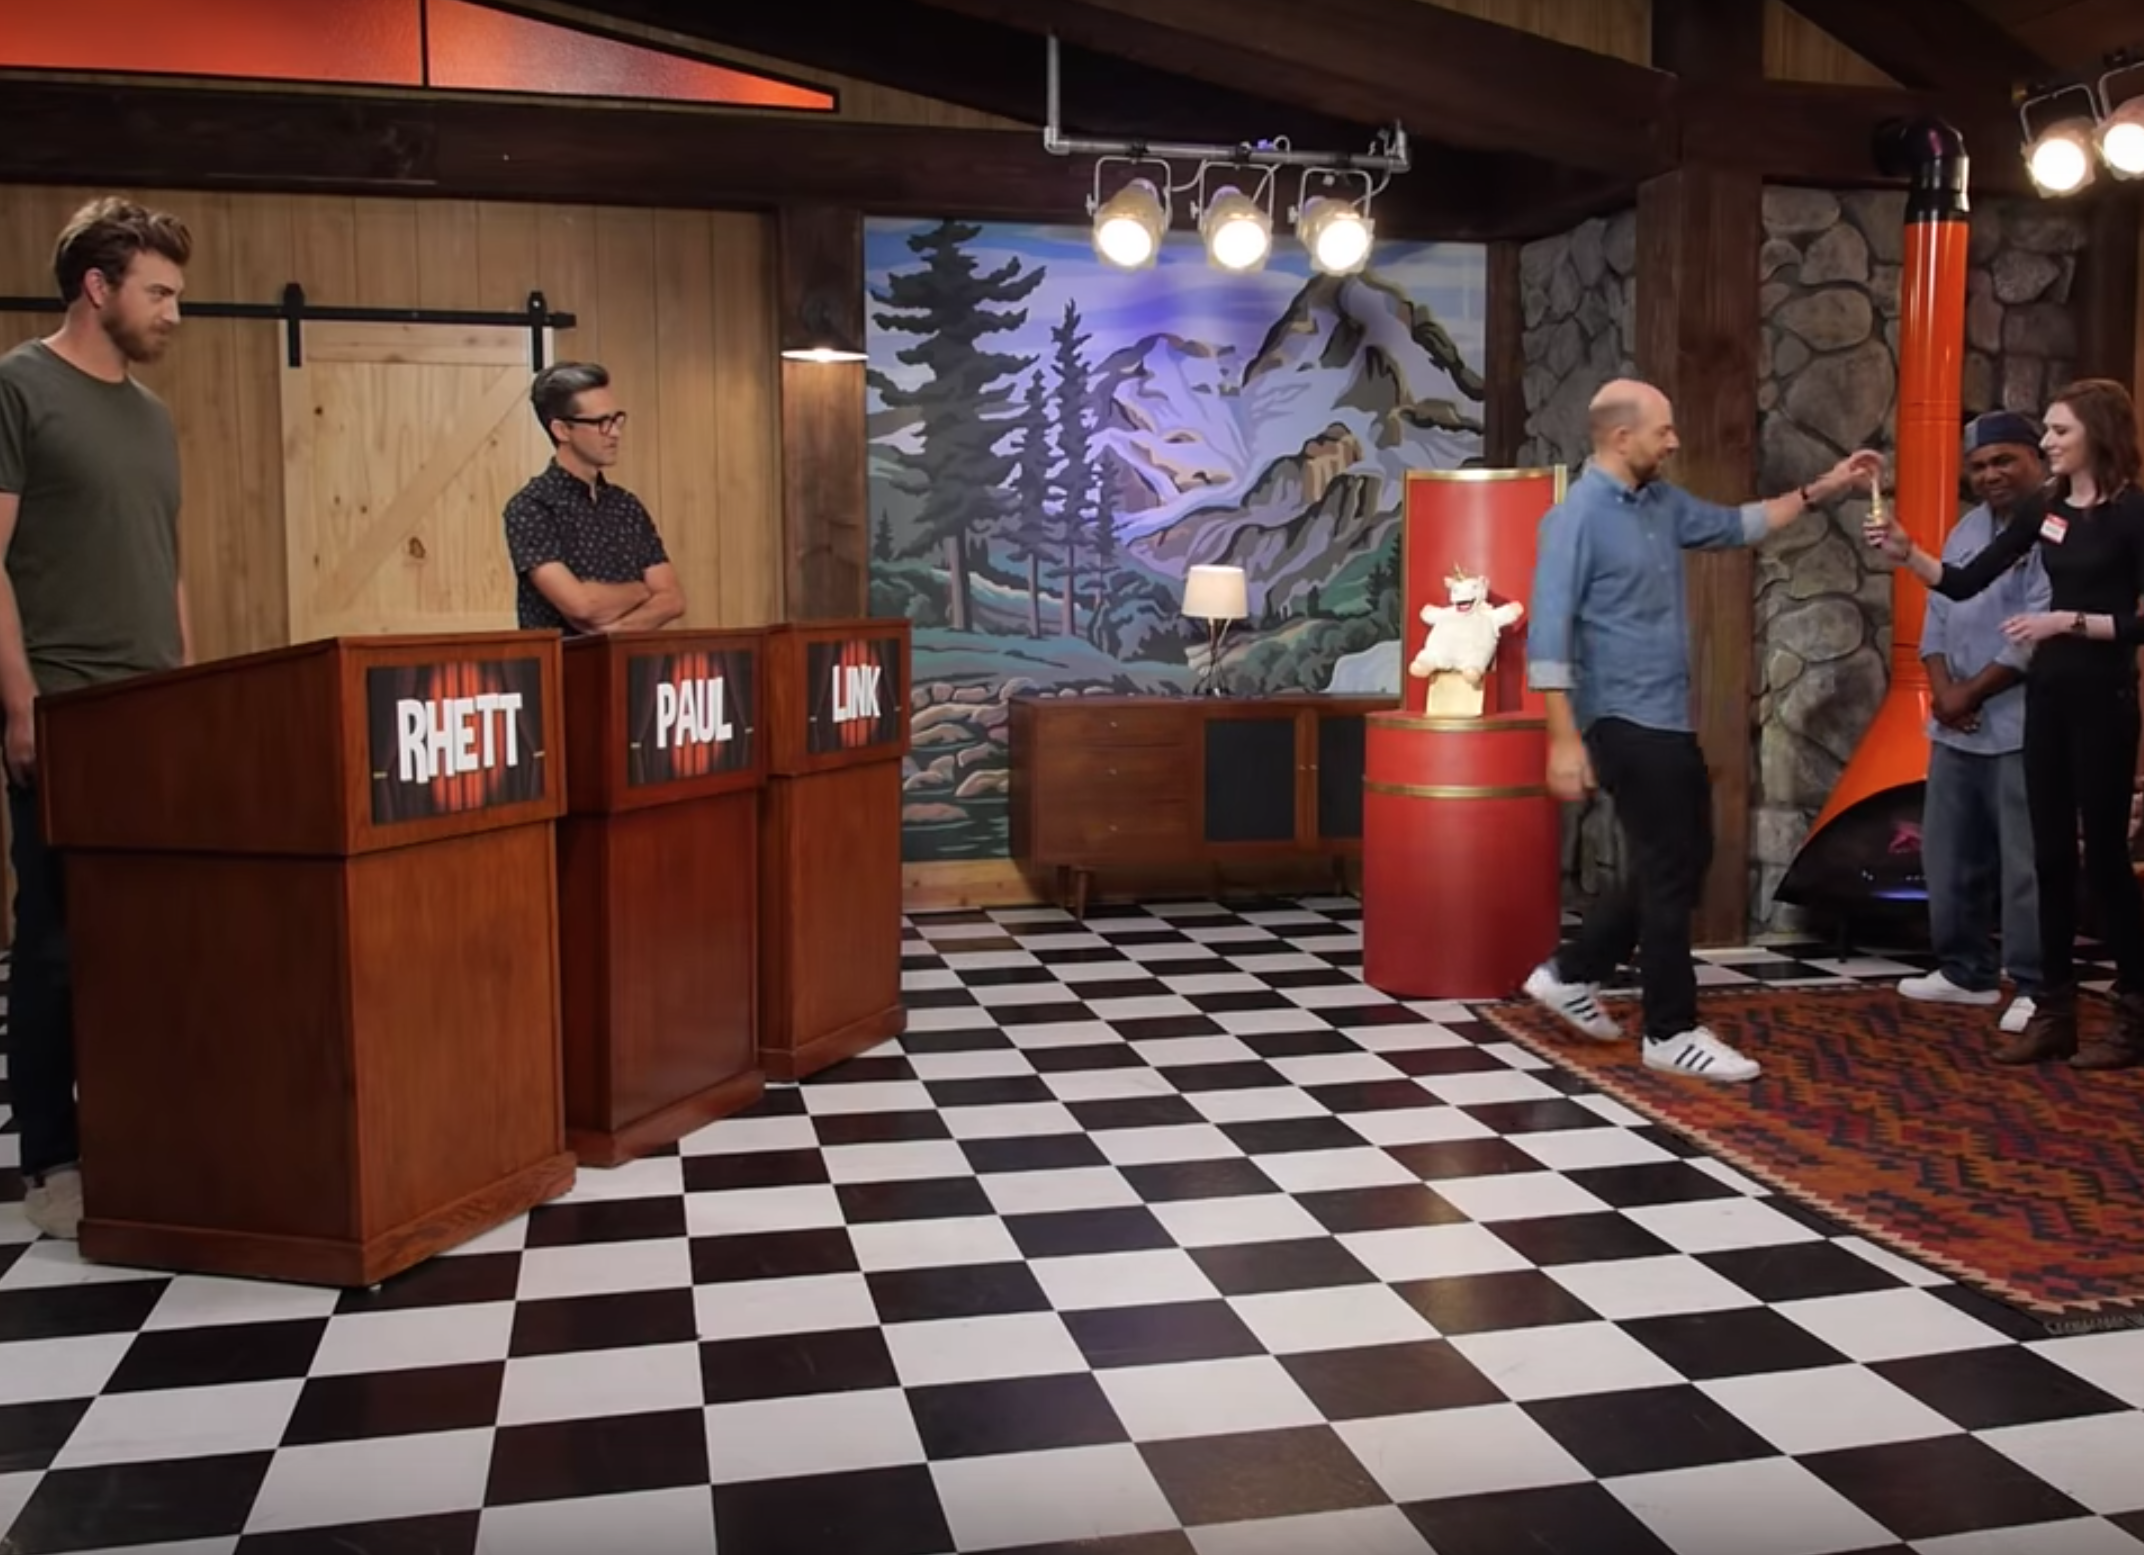 9/25/18  - We were on Good Mythical Morning with Rhett and Link! We had a fabulous time and very excited we got to meet Paul Scheer!   https://www.youtube.com/watch?v=zlWrVYYPpJ8